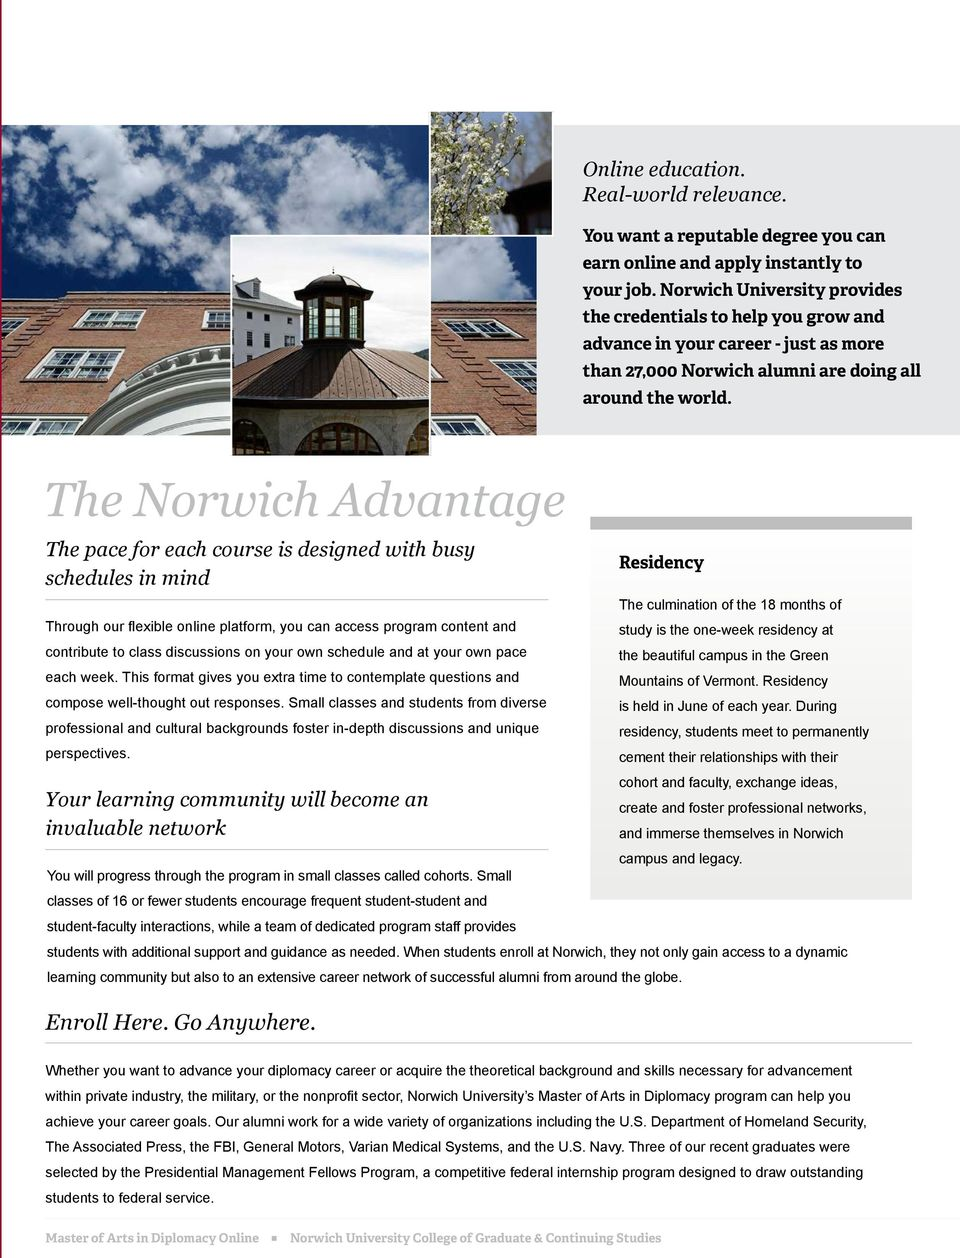 The Norwich Advantage The pace for each course is designed with busy schedules in mind Through our flexible online platform, you can access program content and contribute to class discussions on your